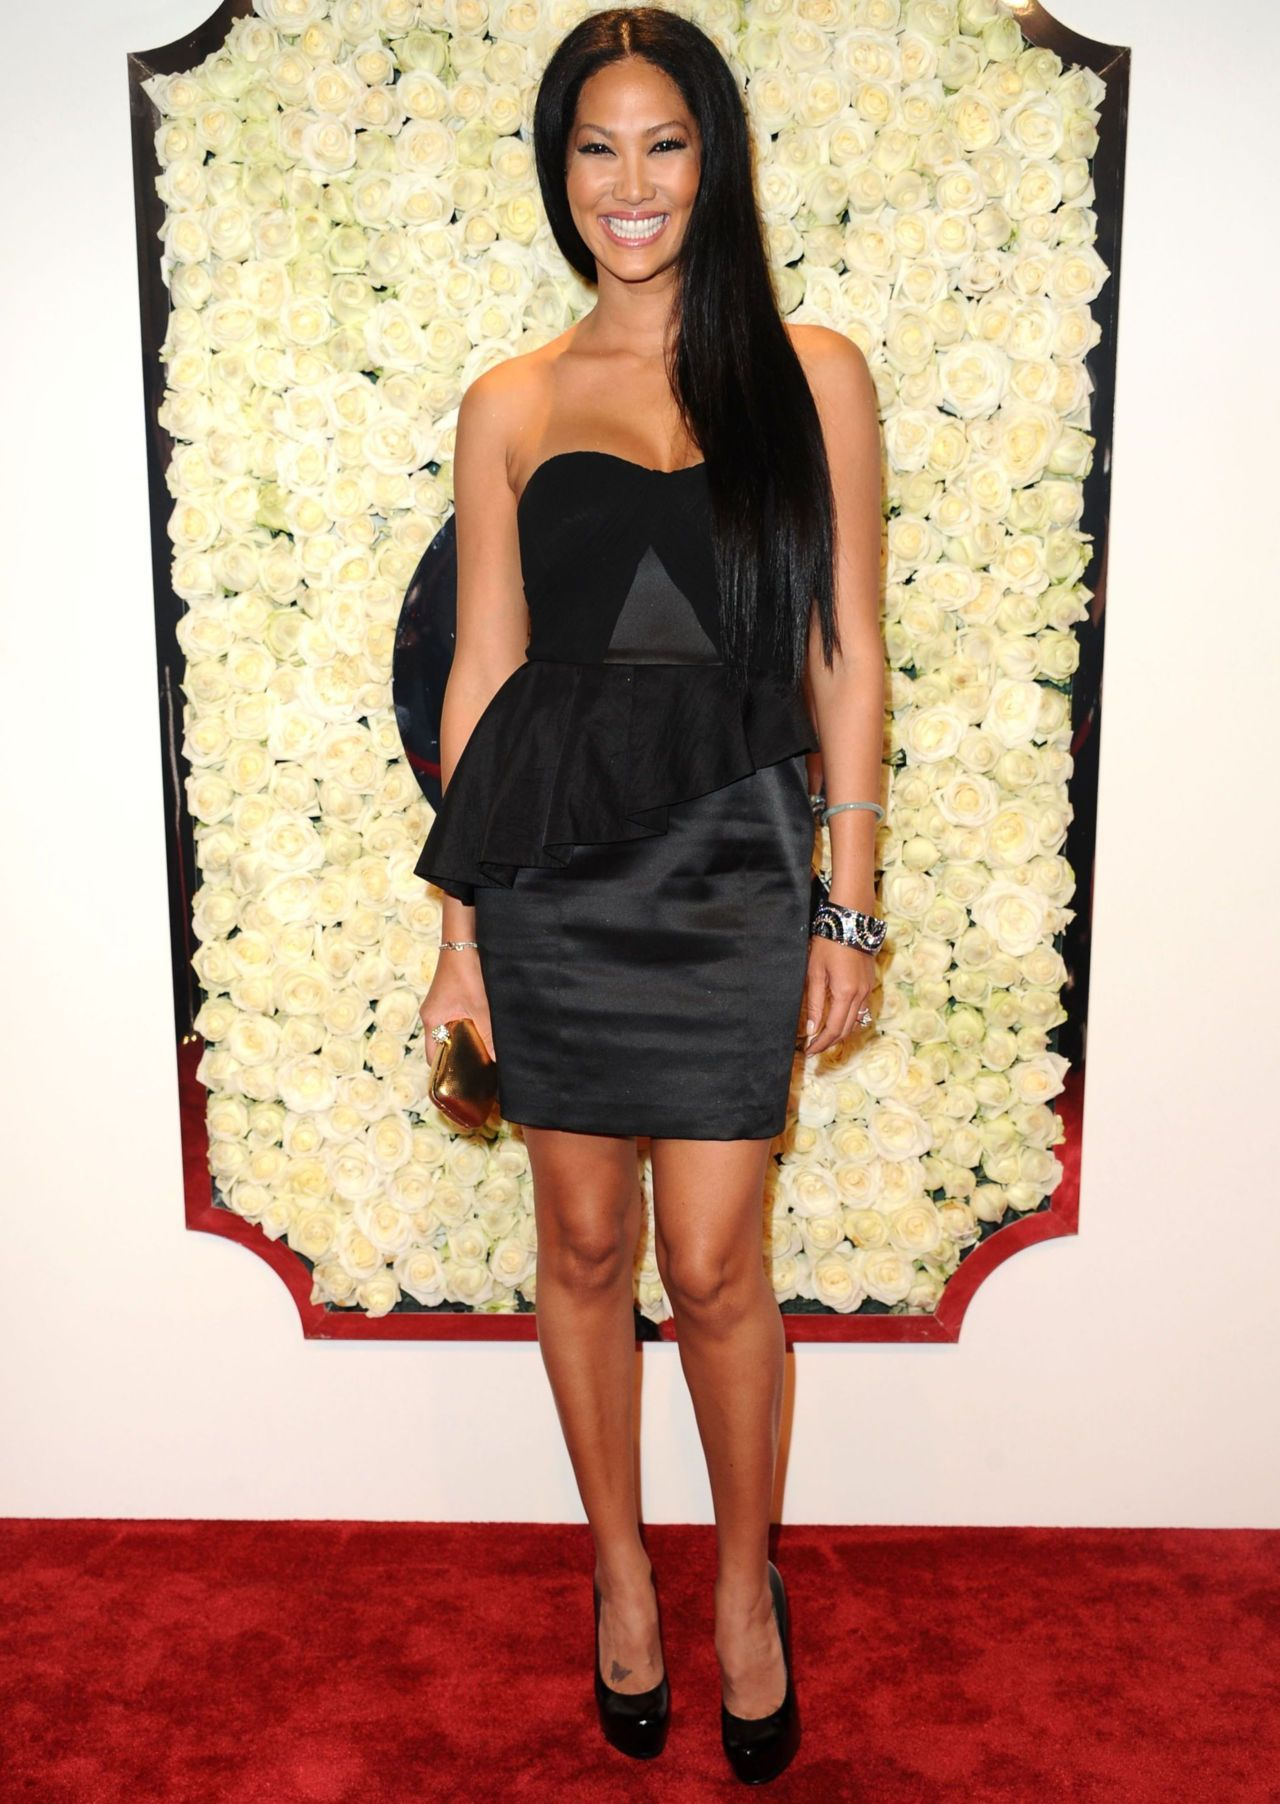 modelsofcolor:  Kimora at the QVC Red Carpet Style Event on Feb. 23 2012